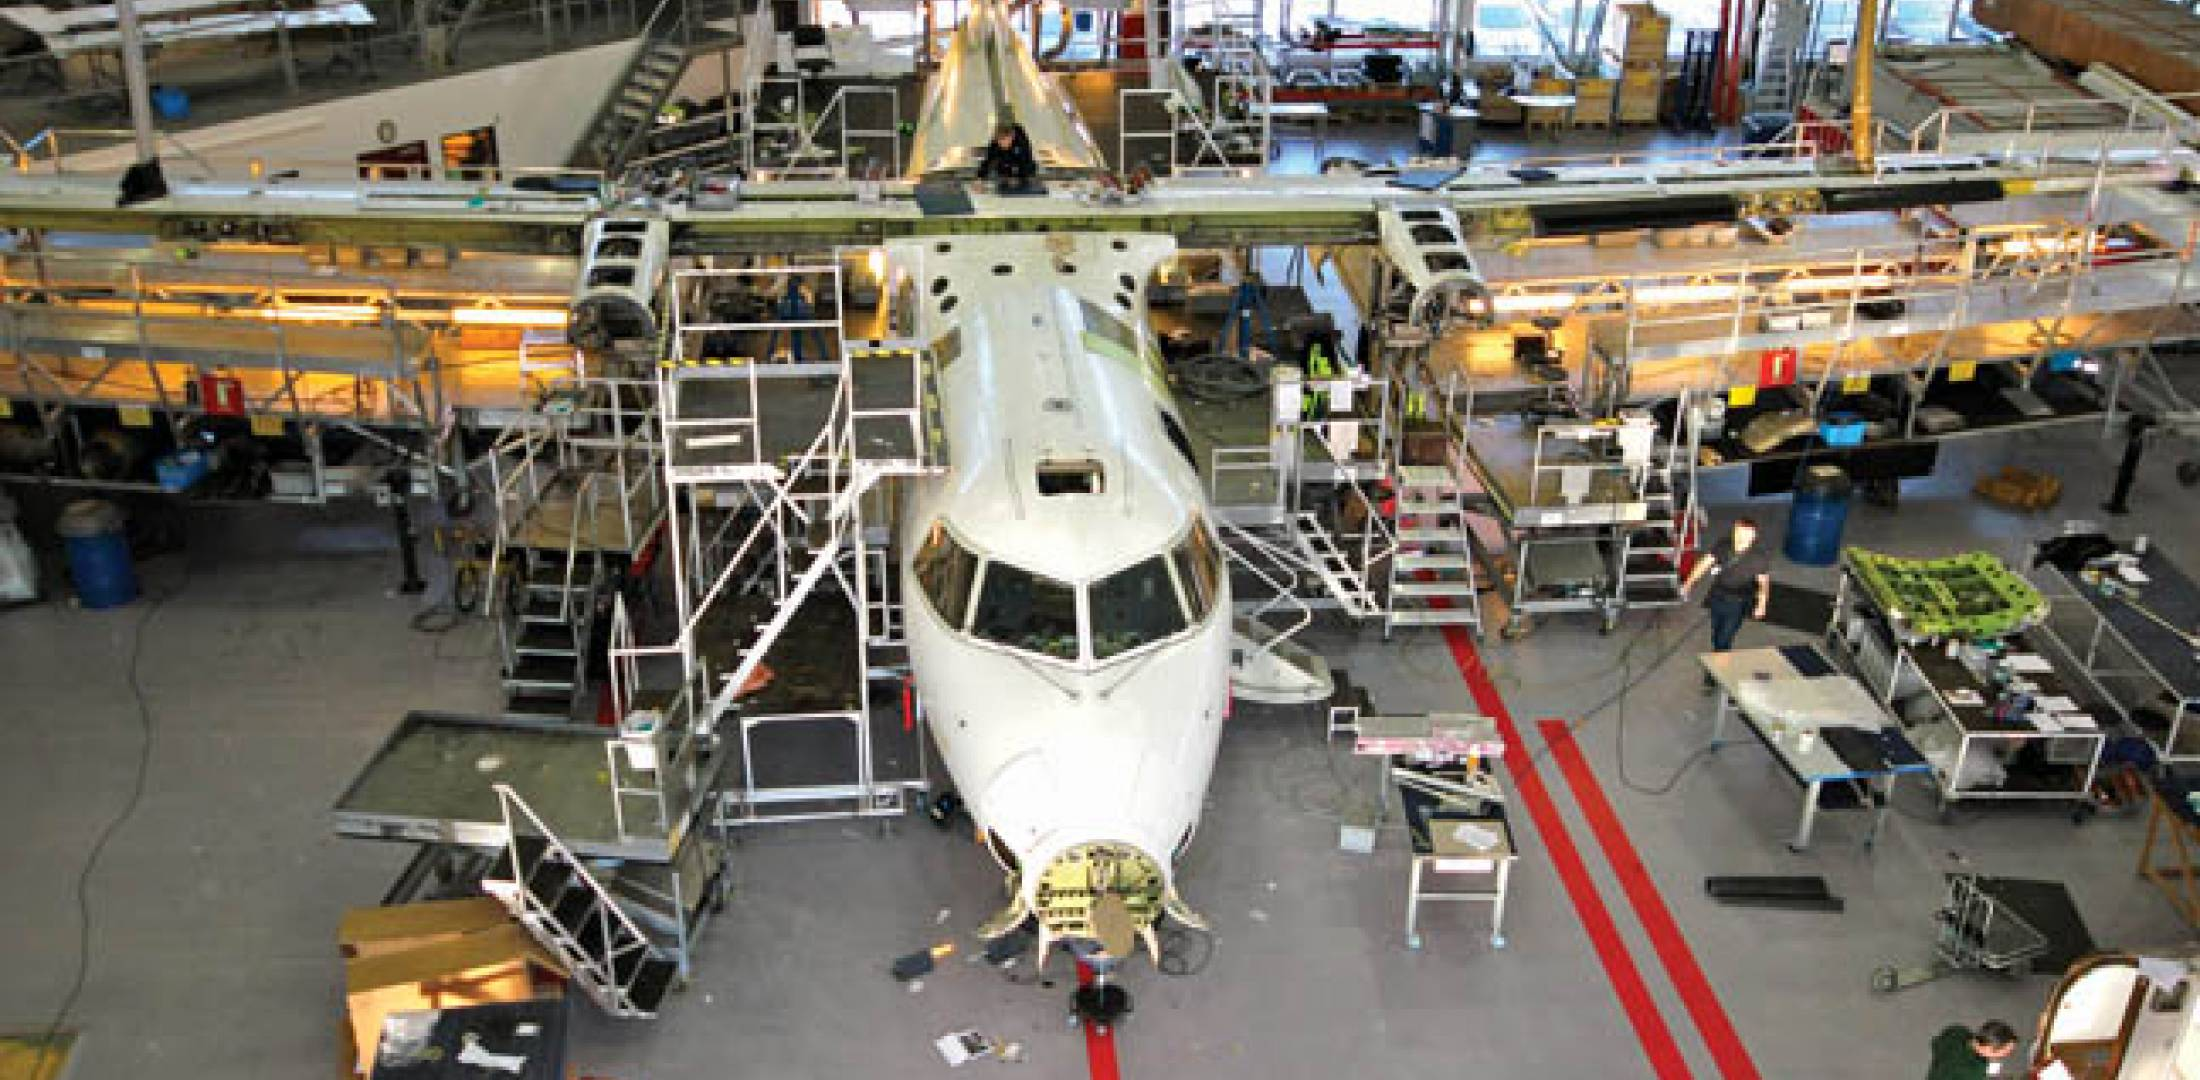 Bombardier Dash 8-100s receiving 80,000-flight cycle inspections under an extended-service program require replacement of about 100 components, including the horizontal stabilizer (aircraft up to MSN 342), and various actuators, manifolds, pressure switches, valves and other components.